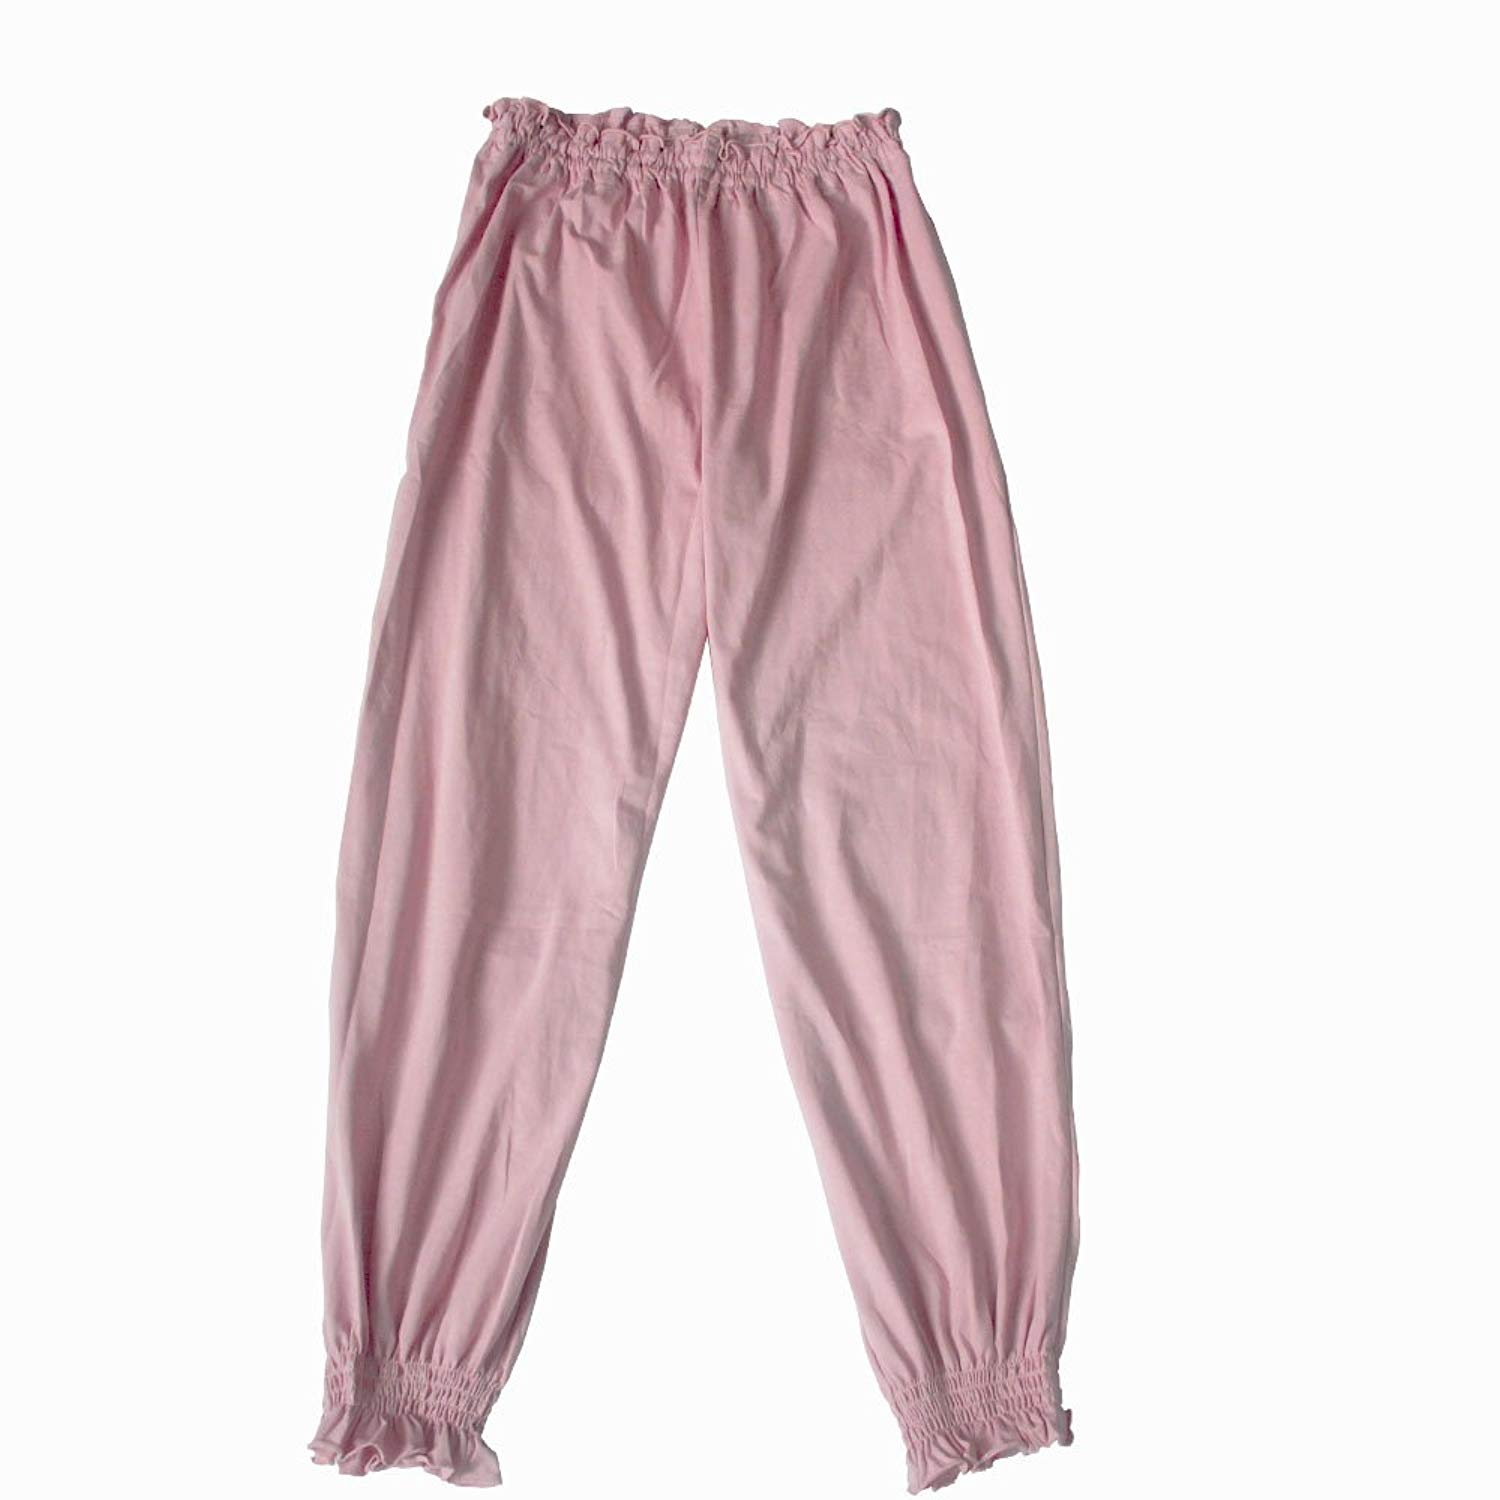 d73e1e0acbee Get Quotations · YL trd V Soft Cotton Women s Pajama Pants Loose Sleepwear  Stretch Solid Pajama Pants for Women